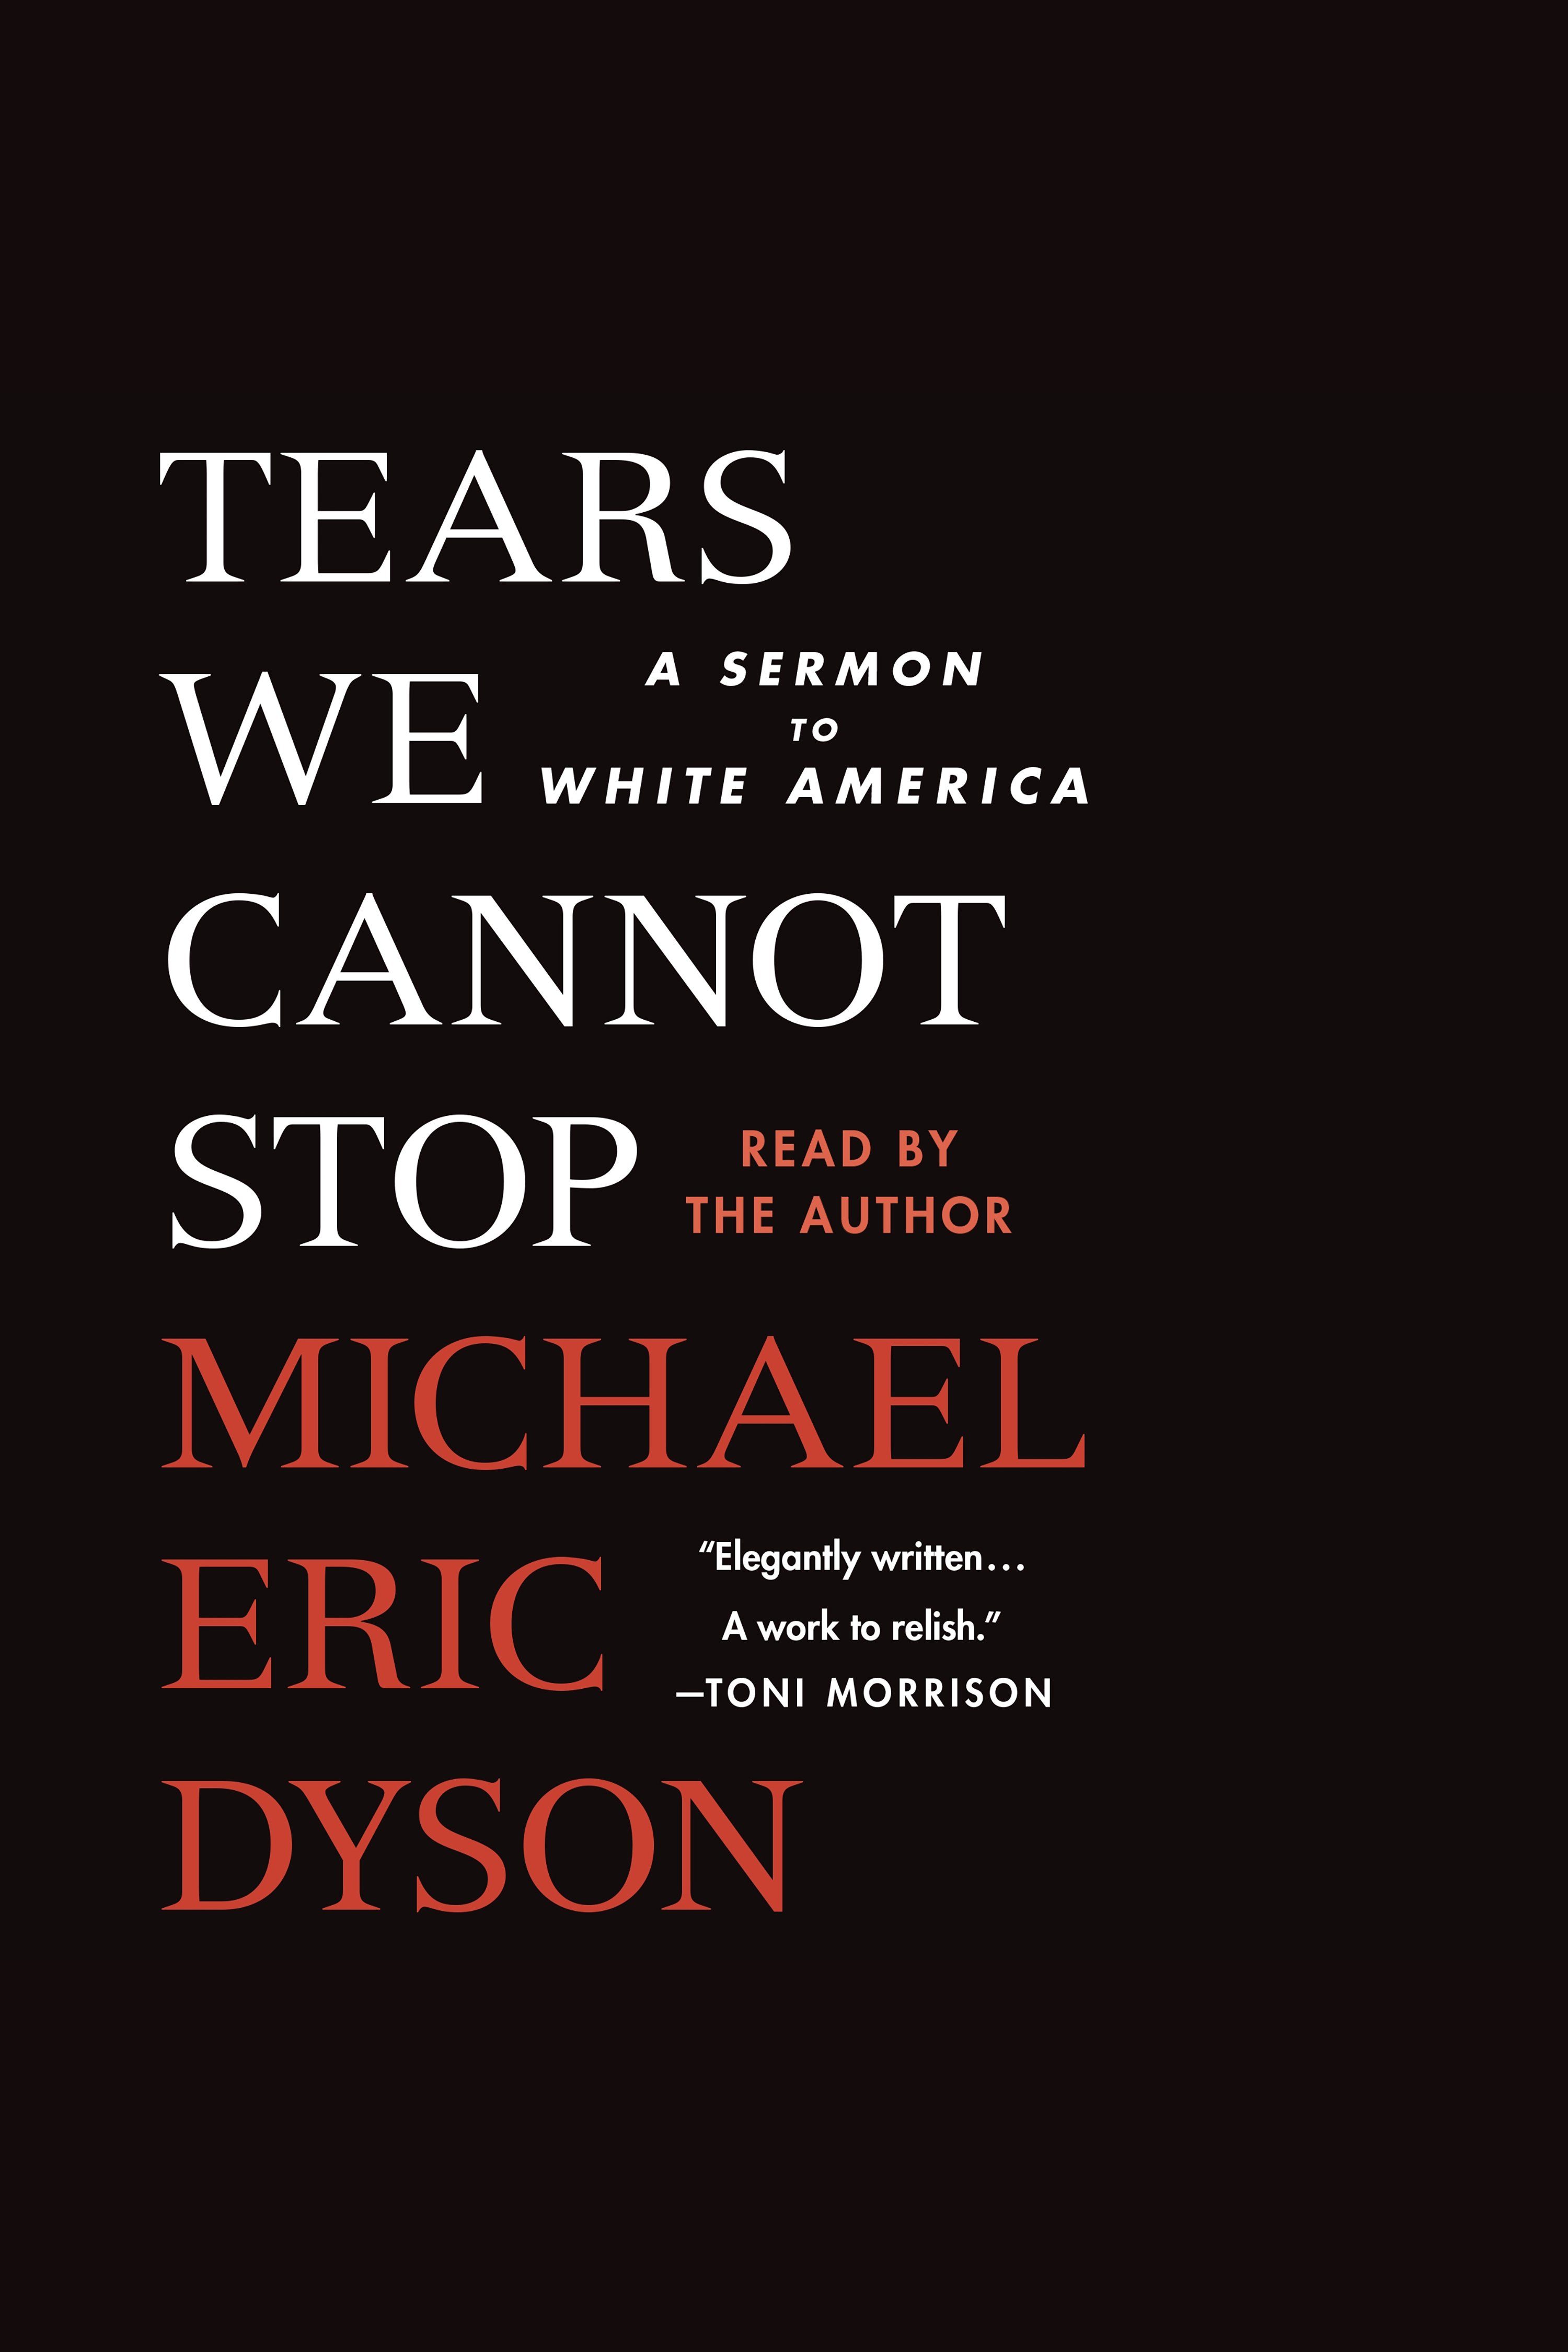 Tears we cannot stop [AudioEbook] : a sermon to white America